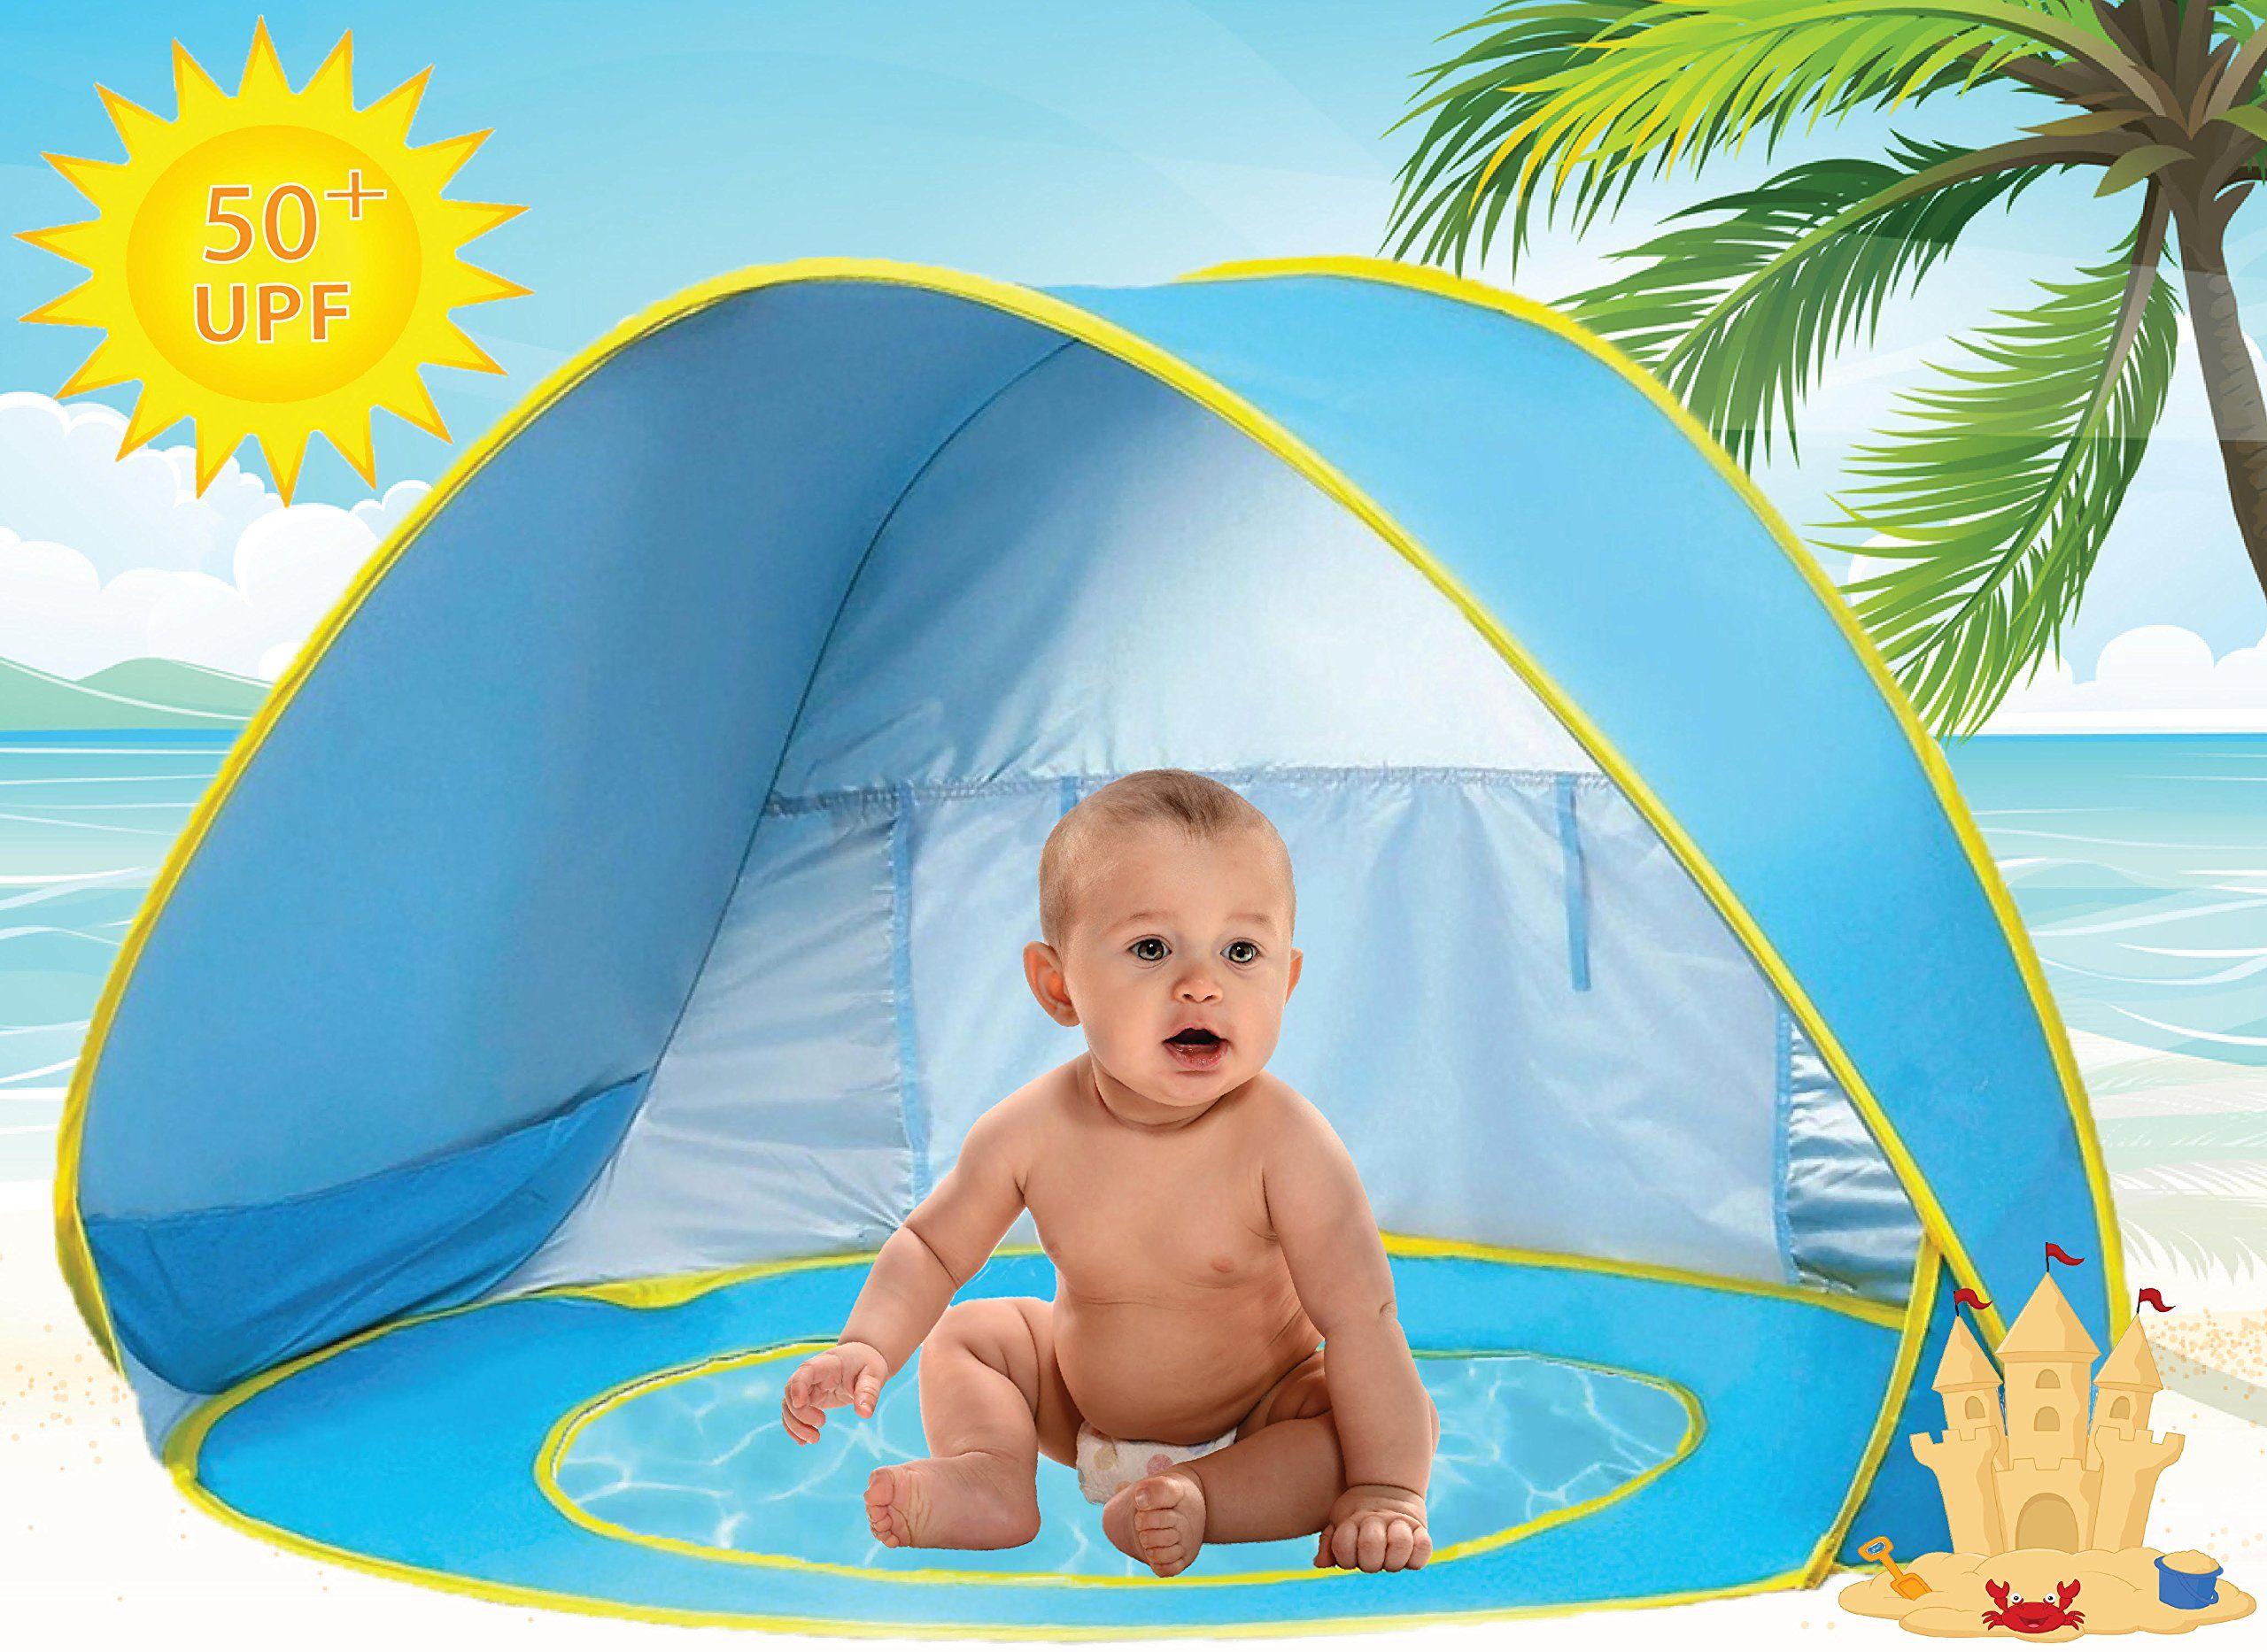 Baby Beach Tent Pool UV Protection Sun Shelter Pop Up for Kids - Blue Yellow. ? baby beach pool umbrella u0026 play tent for children under 3 years old.  sc 1 st  Pinterest & Baby Beach Tent Pool UV Protection Sun Shelter Pop Up for Kids ...